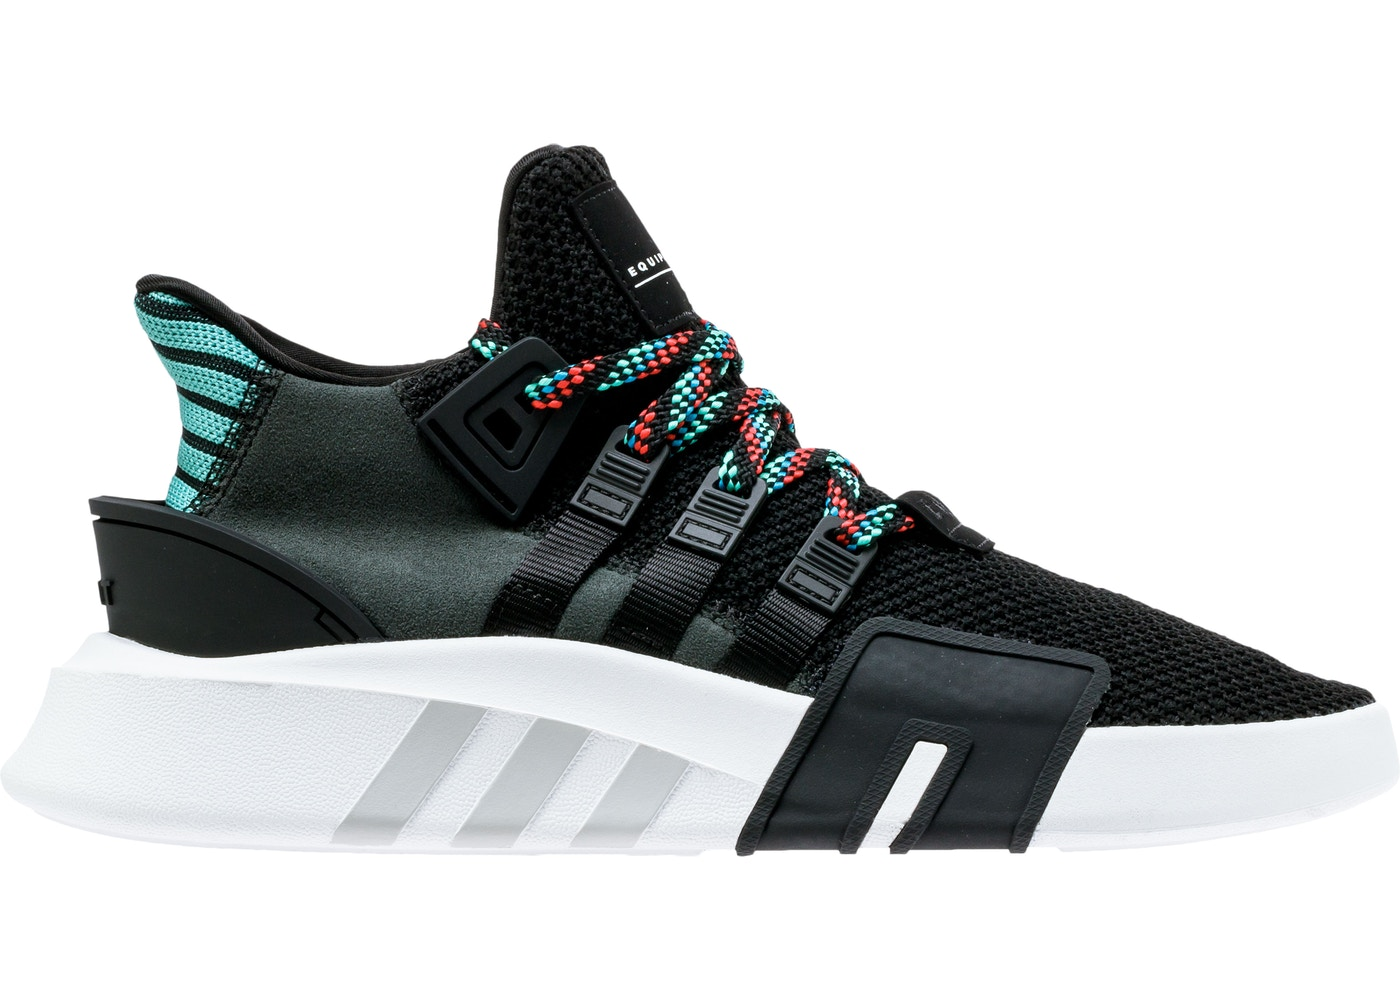 grandi affari 2017 più amato ufficiale adidas EQT Basketball Adv Core Black Sub Green